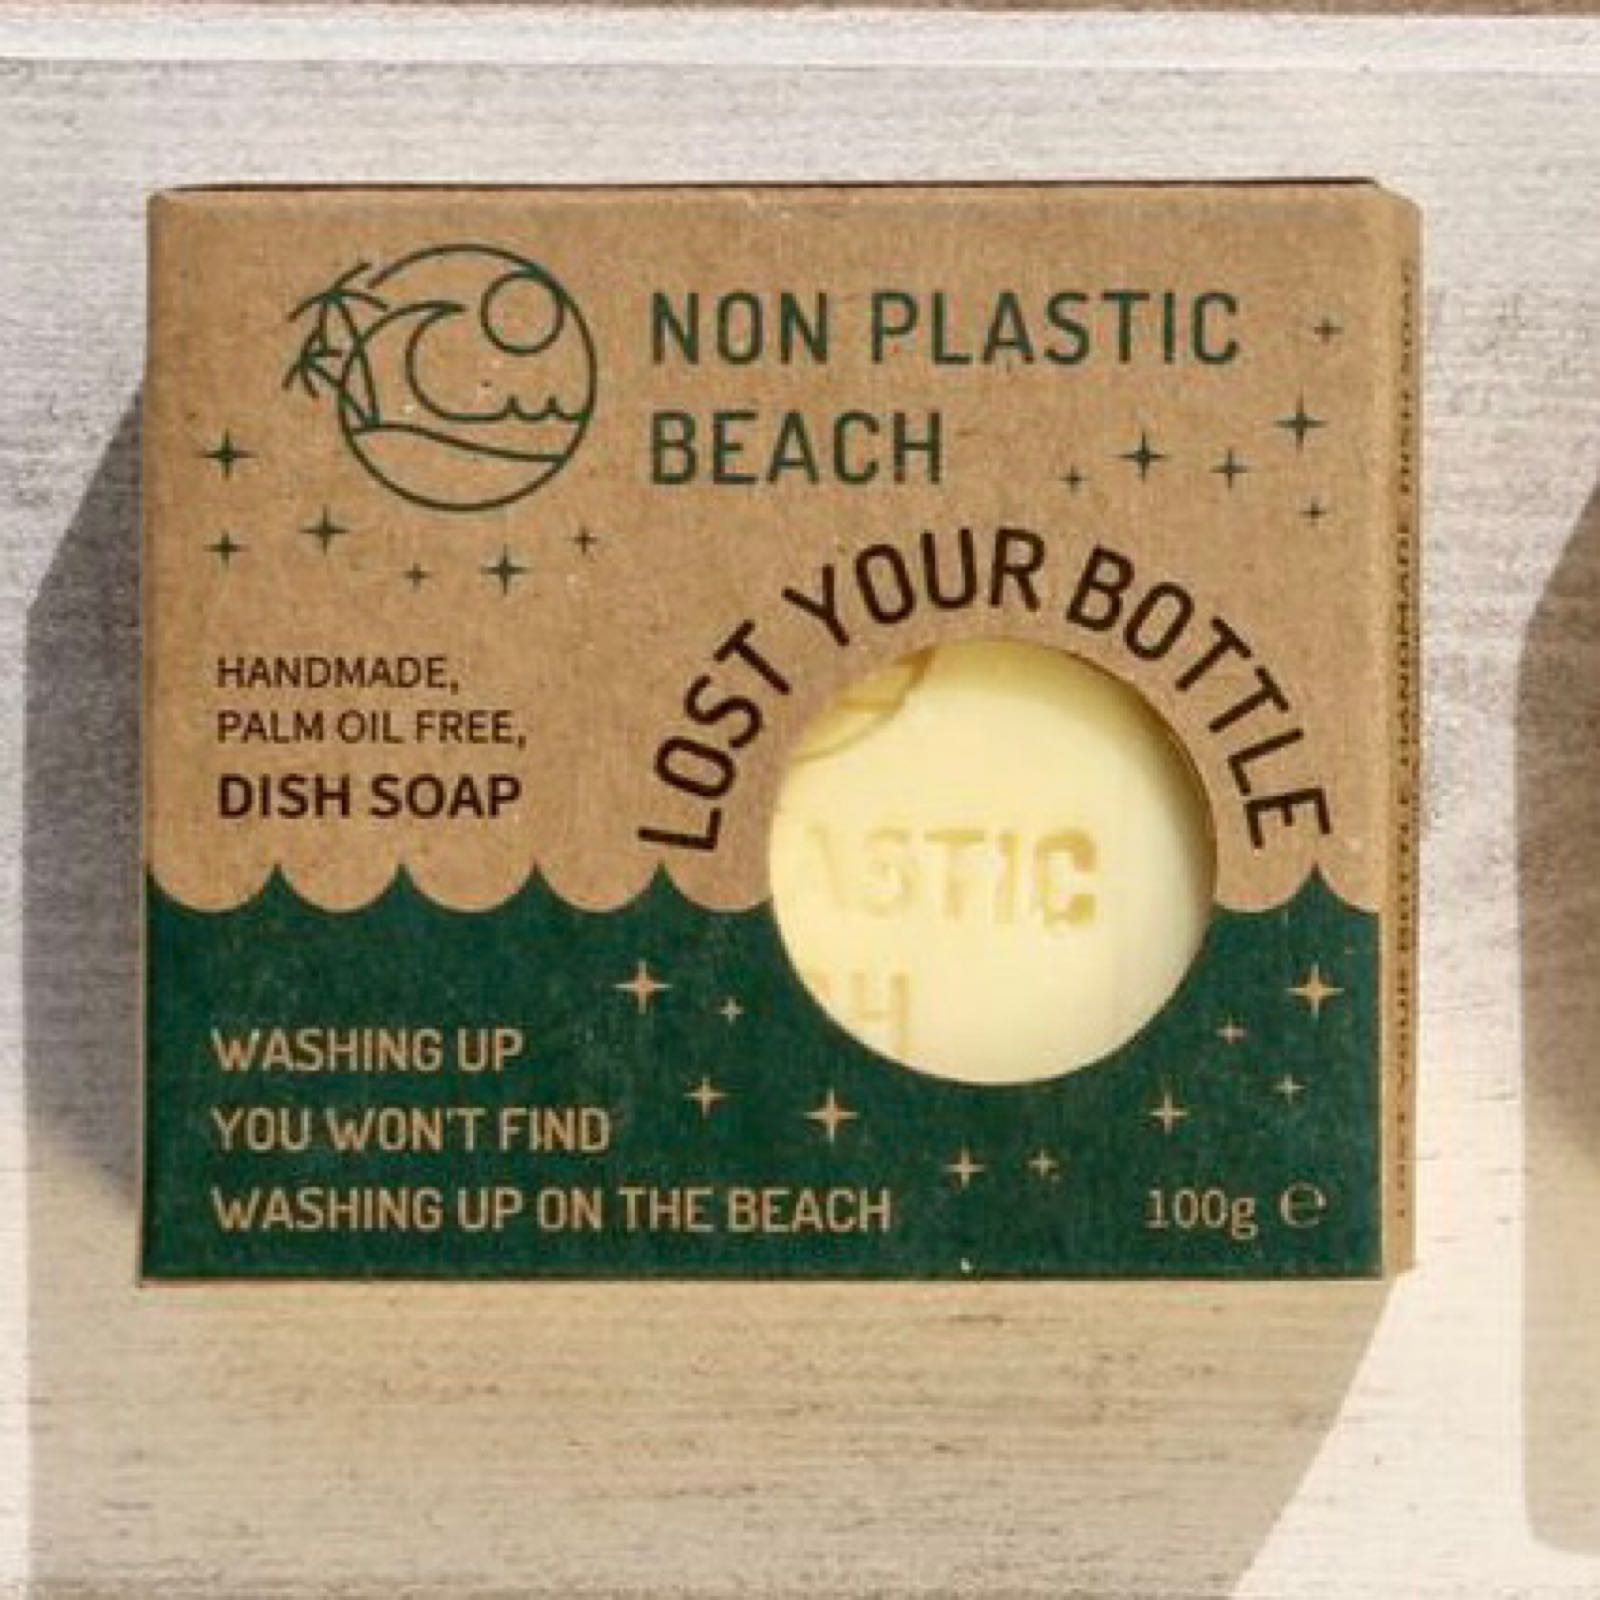 'Lost Your Bottle' Plastic Free Dish Soap